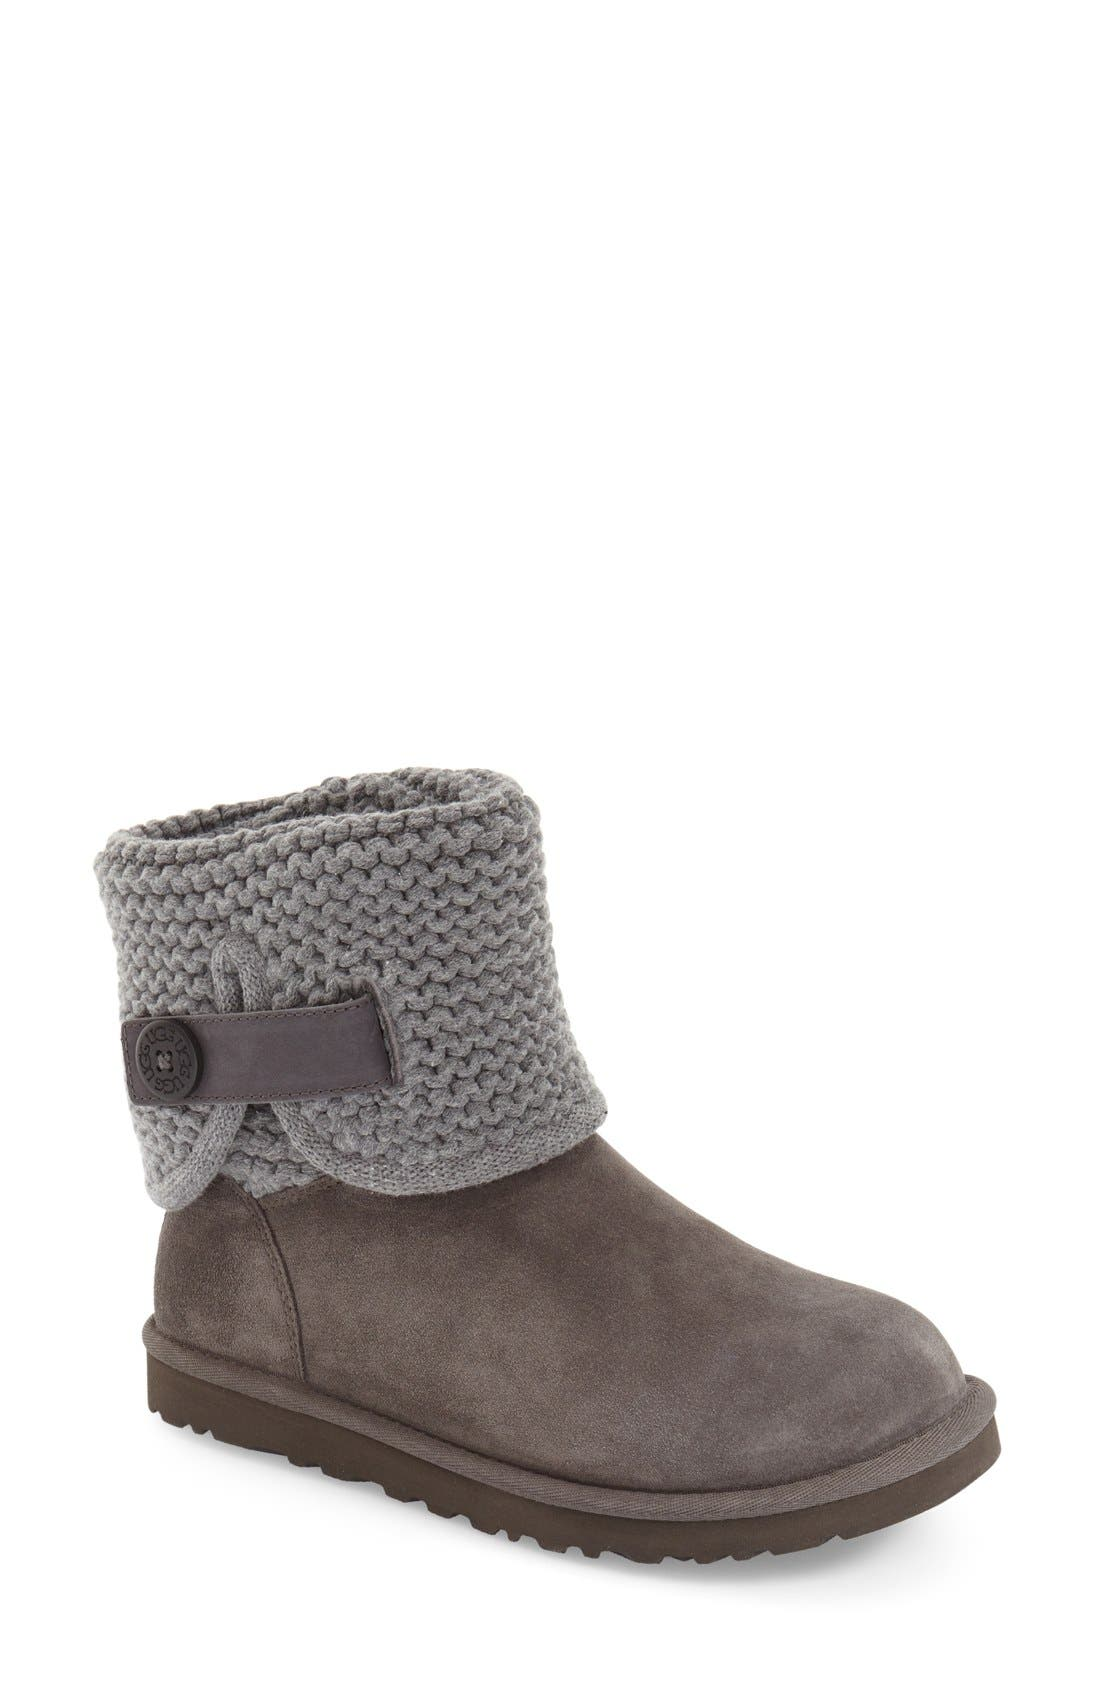 Shaina Knit Cuff Bootie,                             Main thumbnail 3, color,